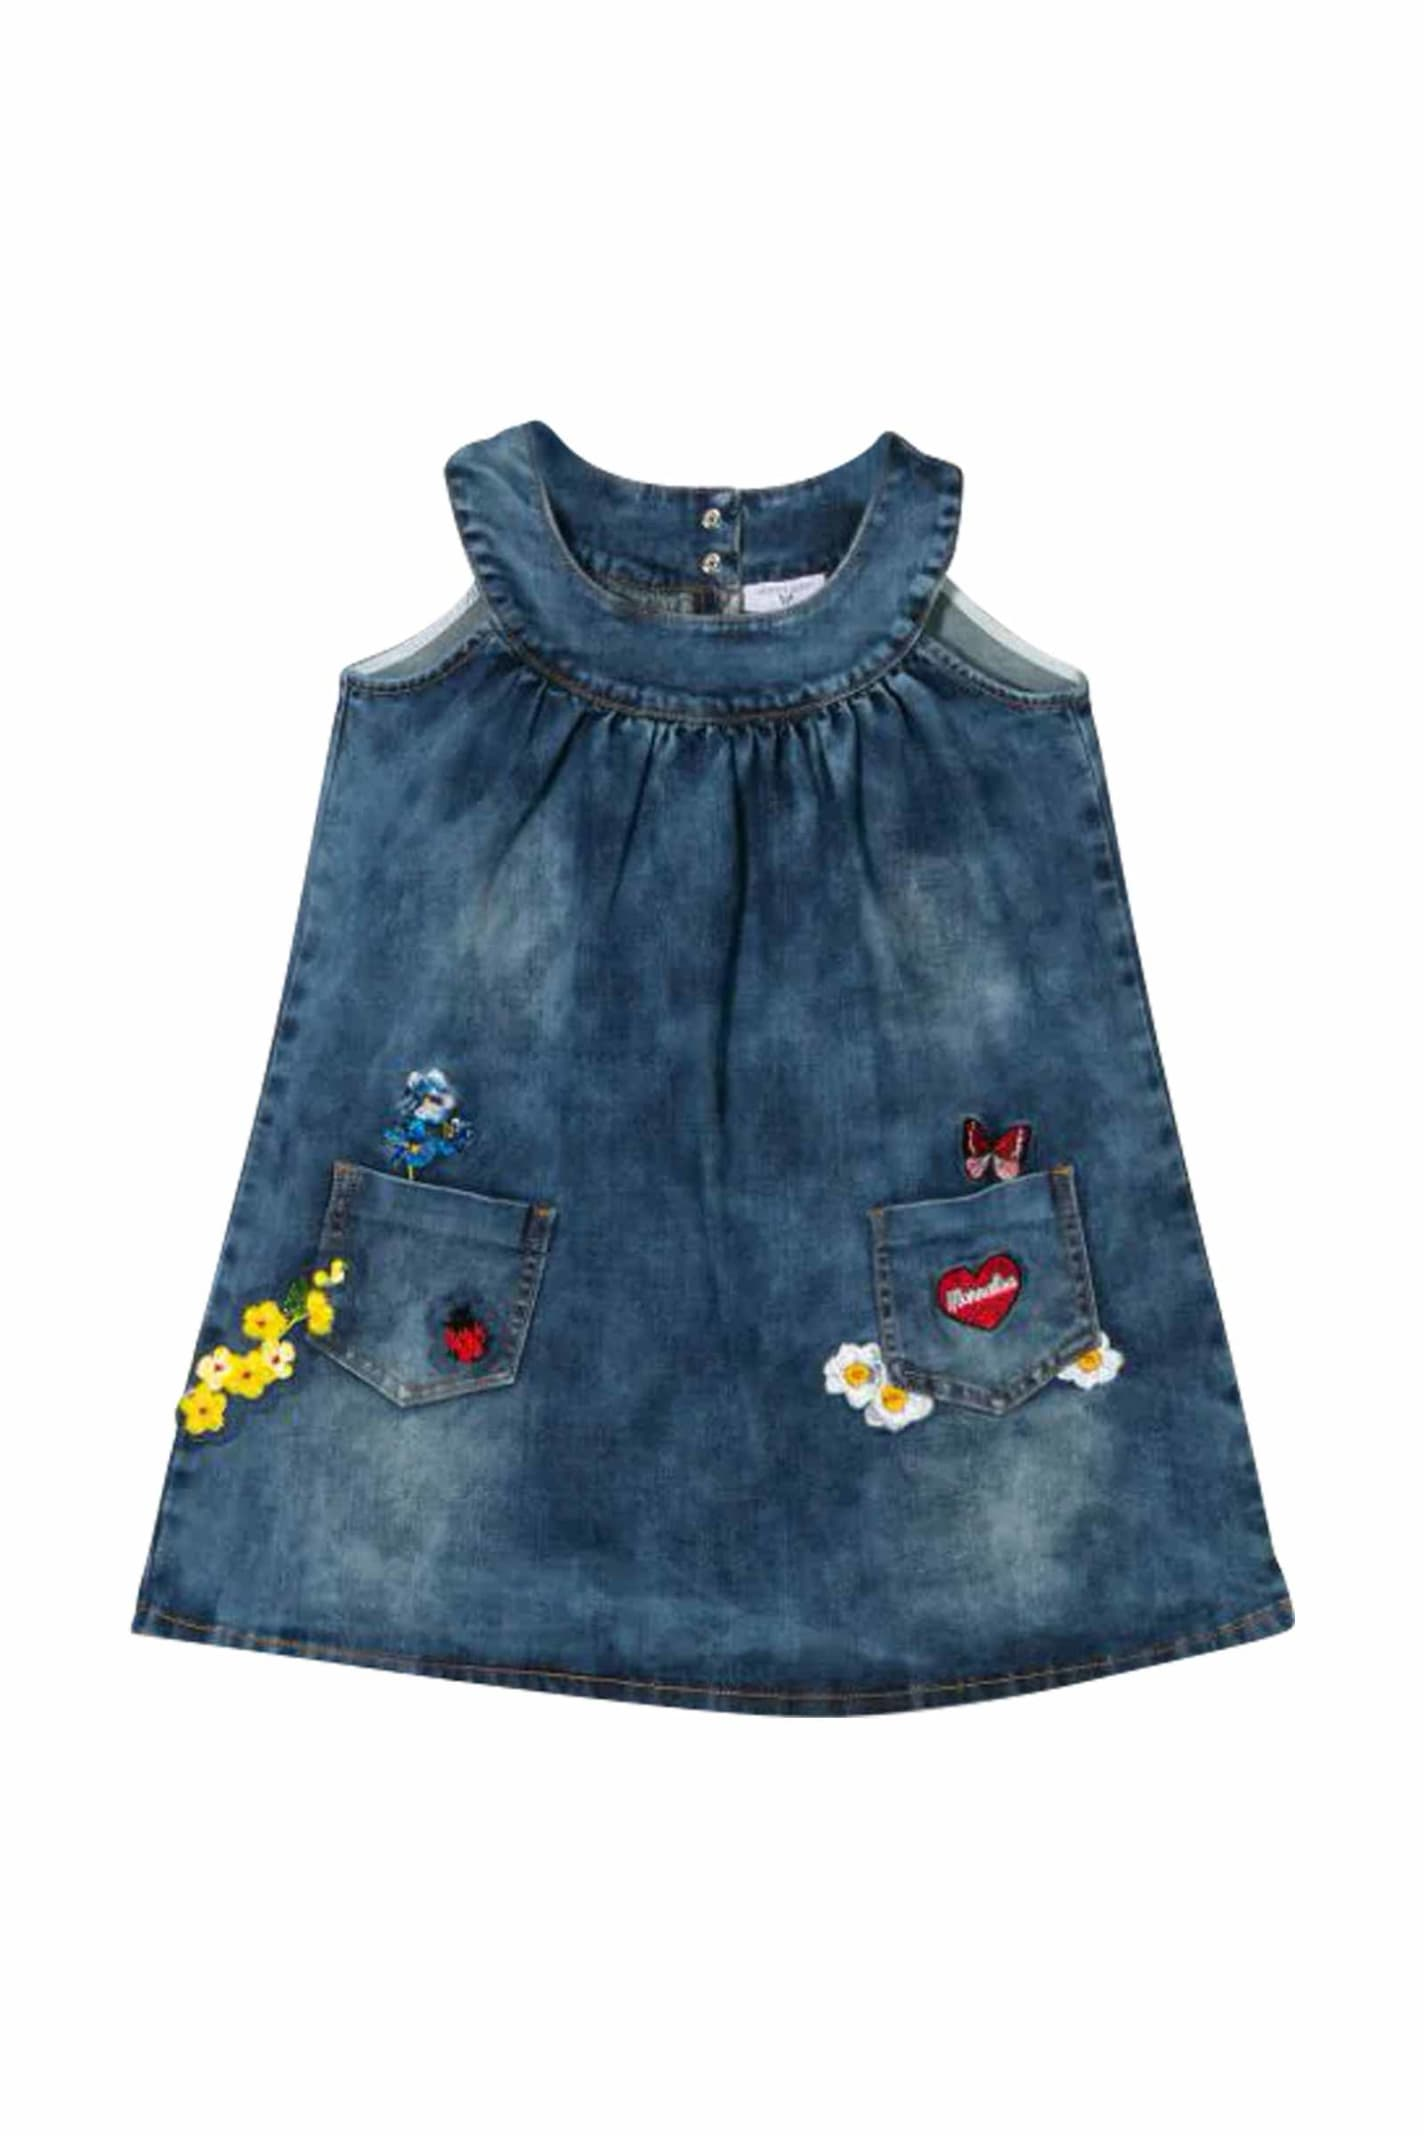 Buy Monnalisa Denim Dress With Embroidery online, shop Monnalisa with free shipping